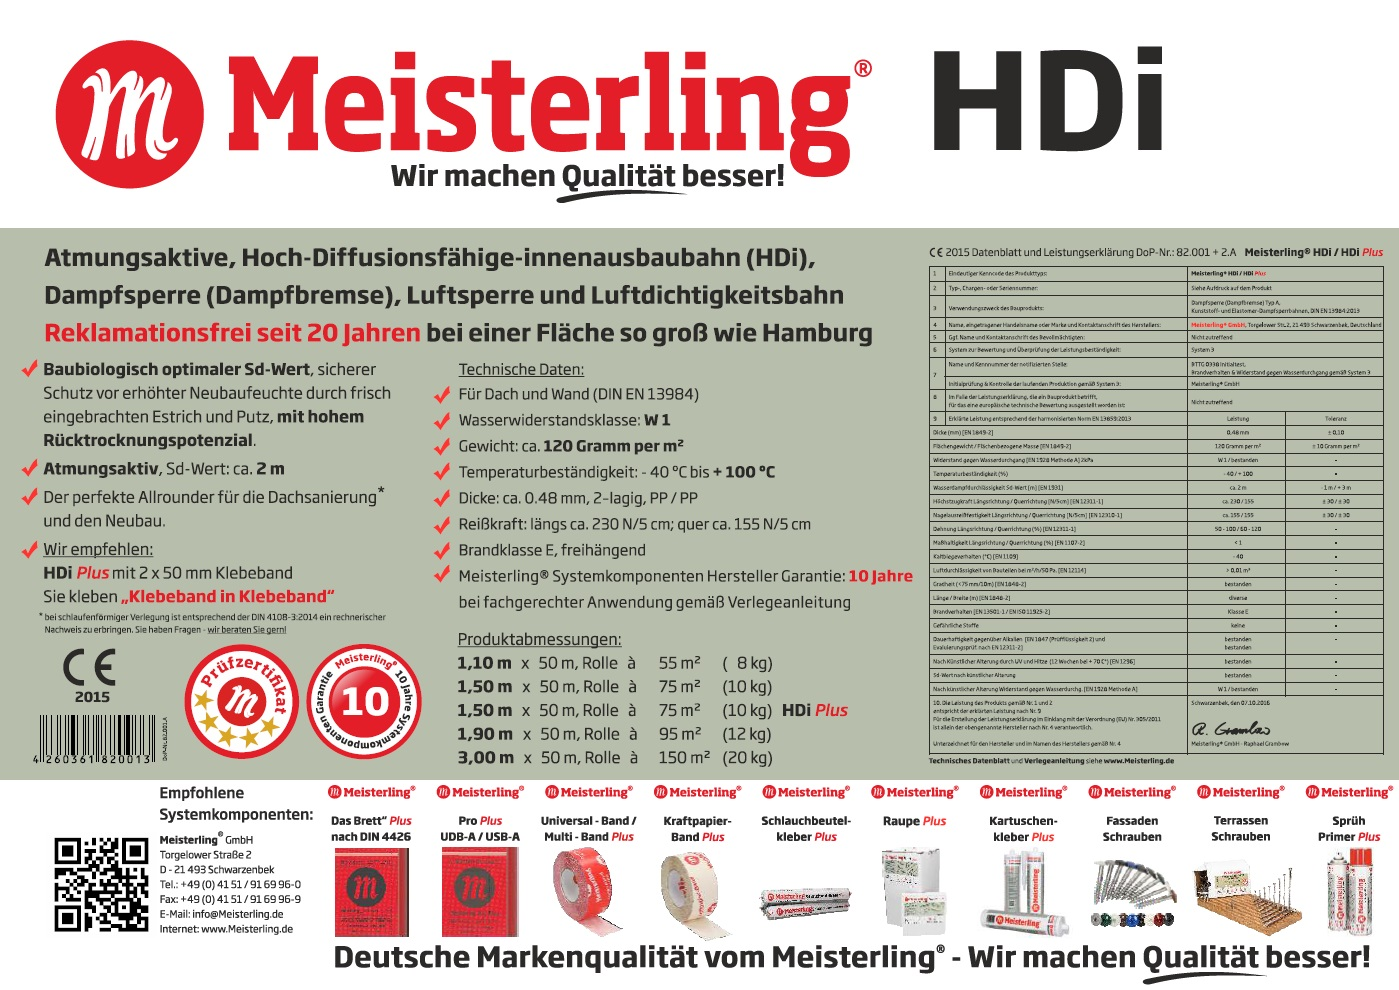 Meisterling HDi Variabel -adaptiv Dampfbremse//Dampfsperre feuchtevariabel